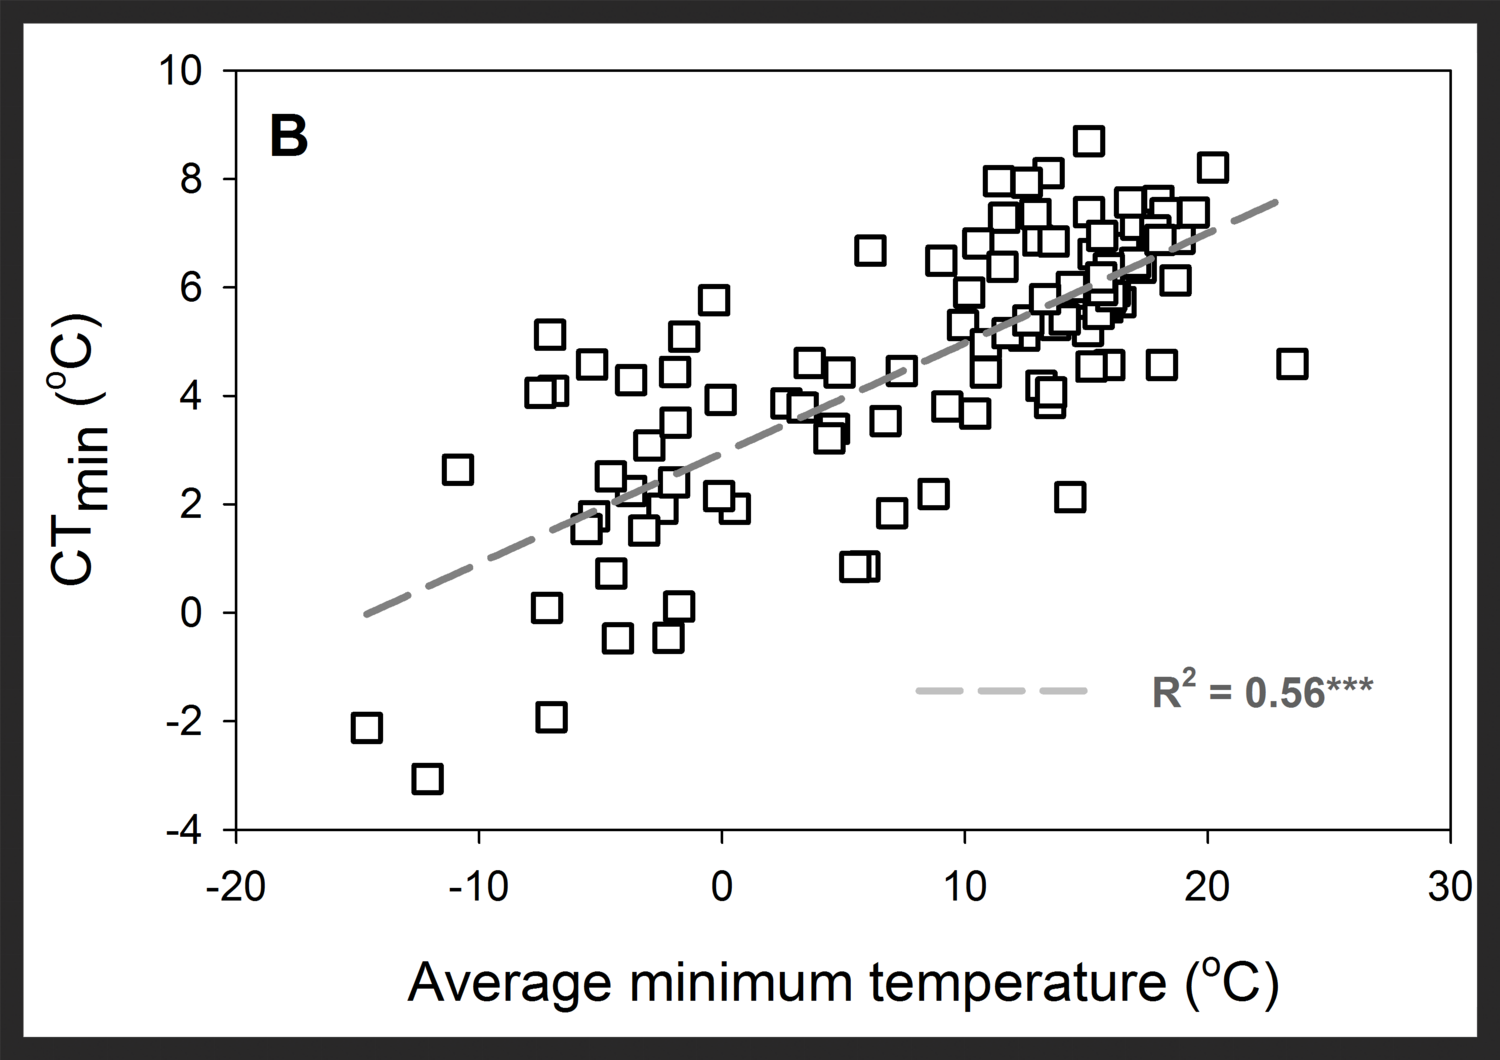 Relation between minimal temperature of the environment and chill resistance measured as the temperature of cold coma in 100 species of  Drosophila